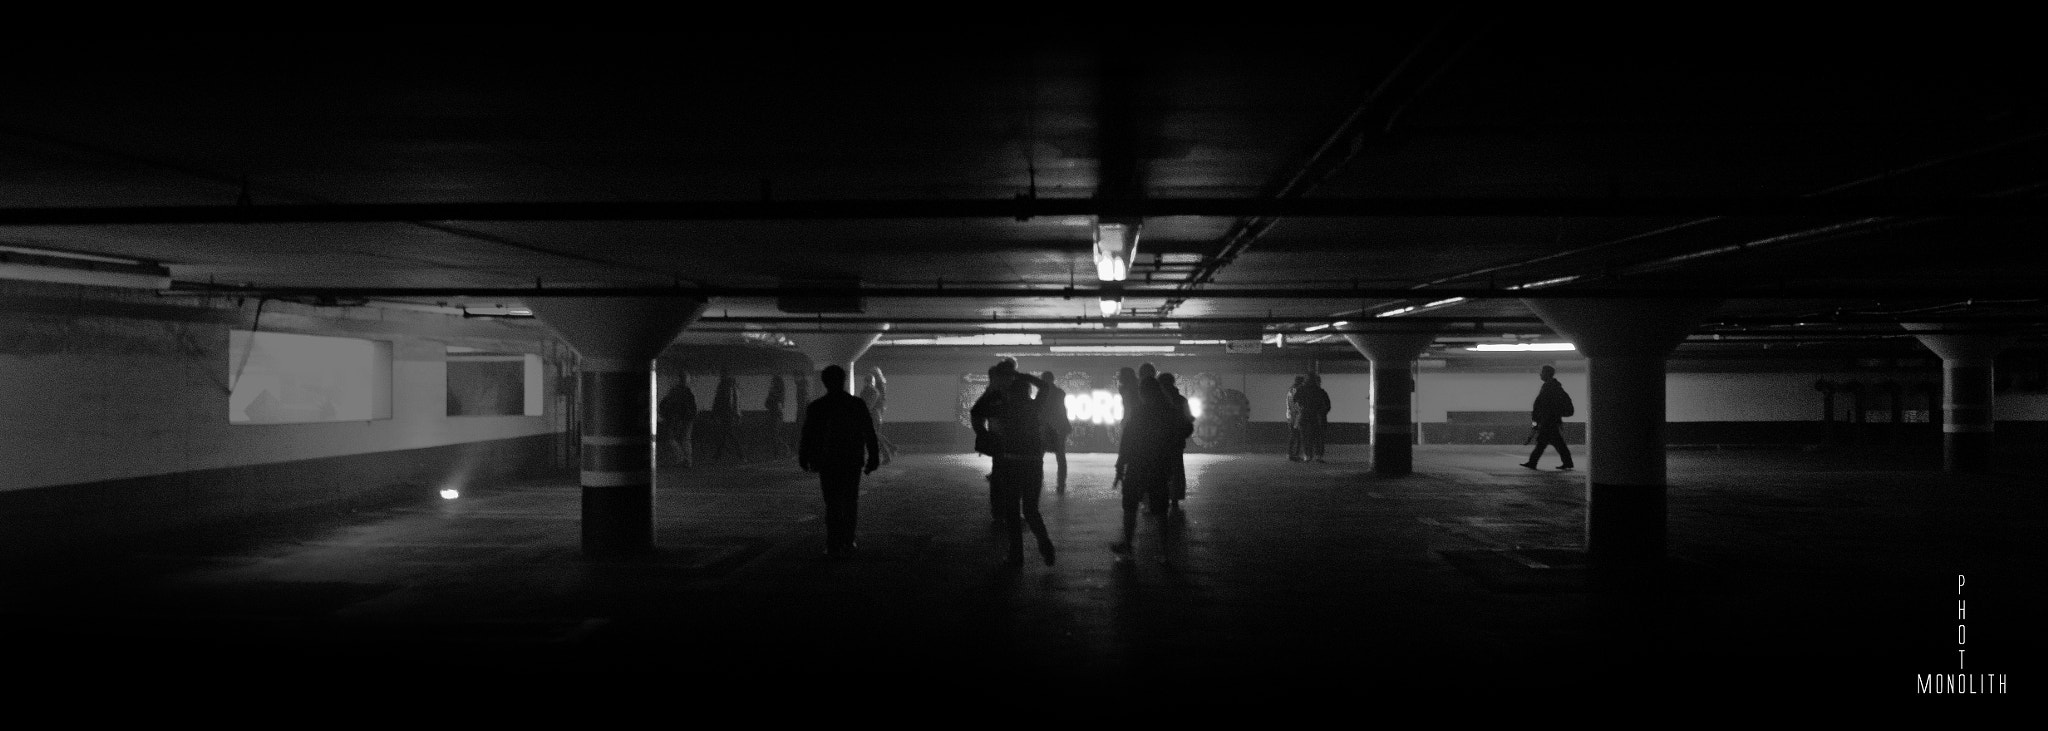 Photograph Underground by Monolith Photo on 500px